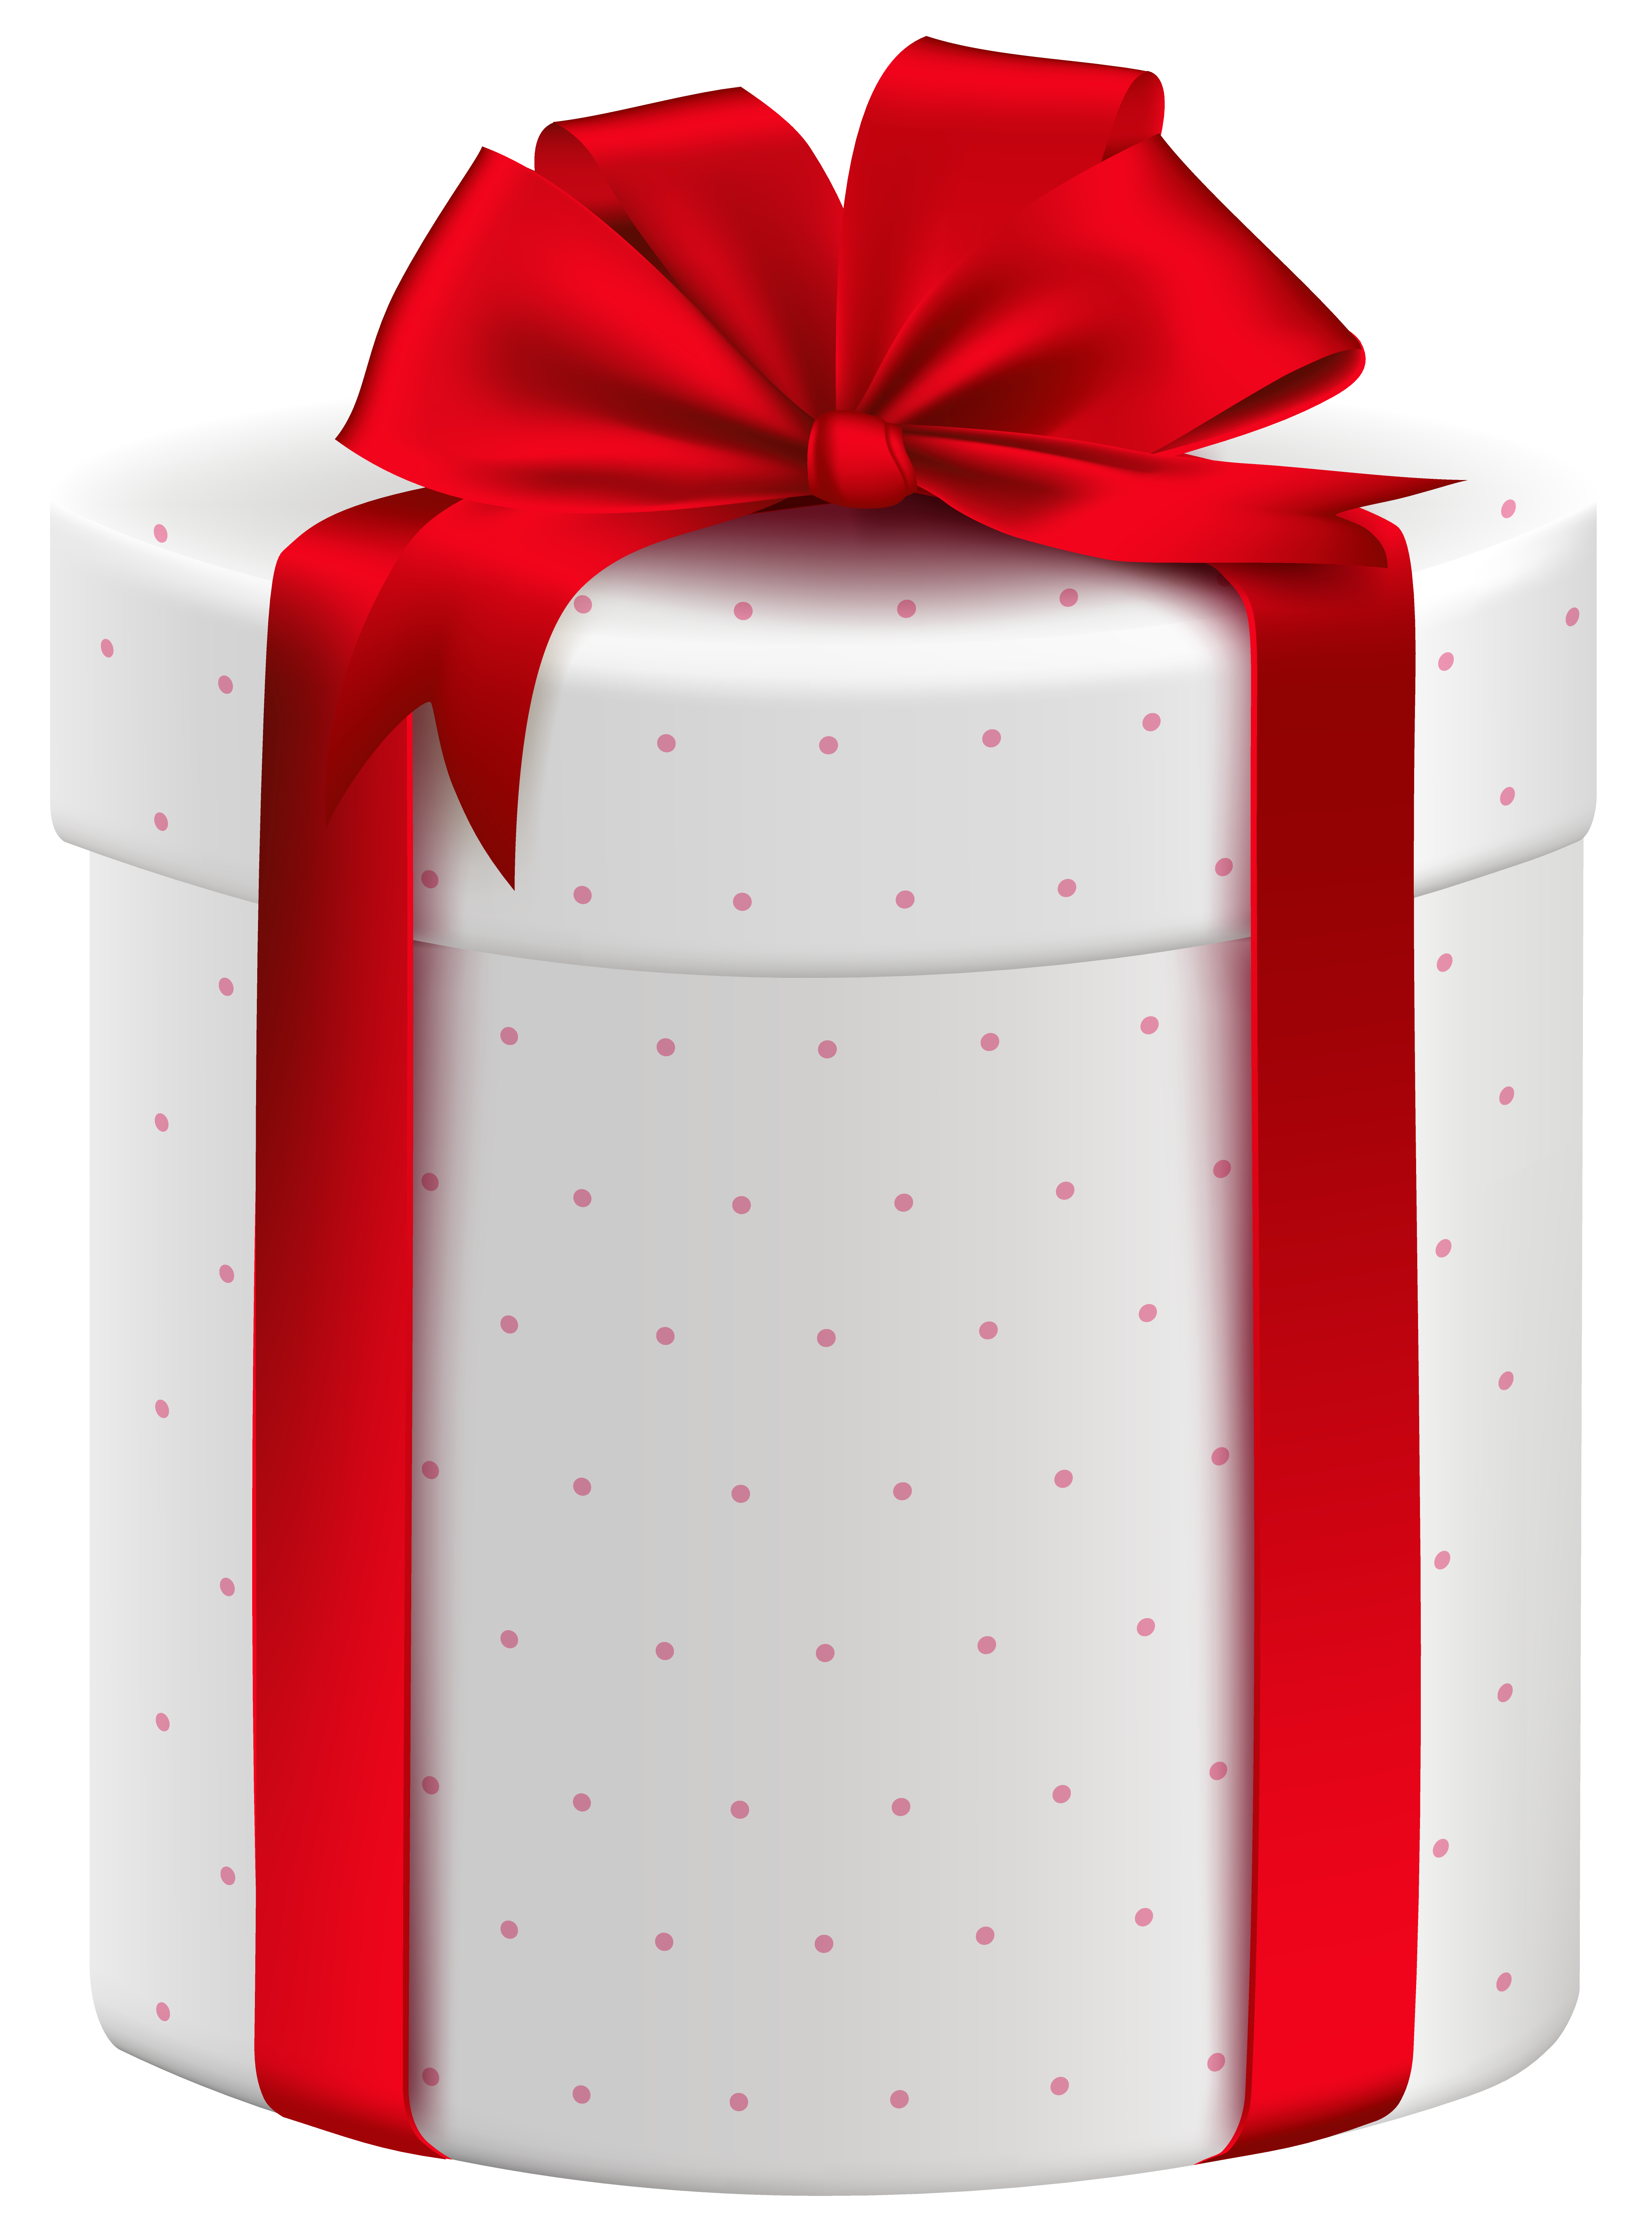 Cute boxes png. White gift box with